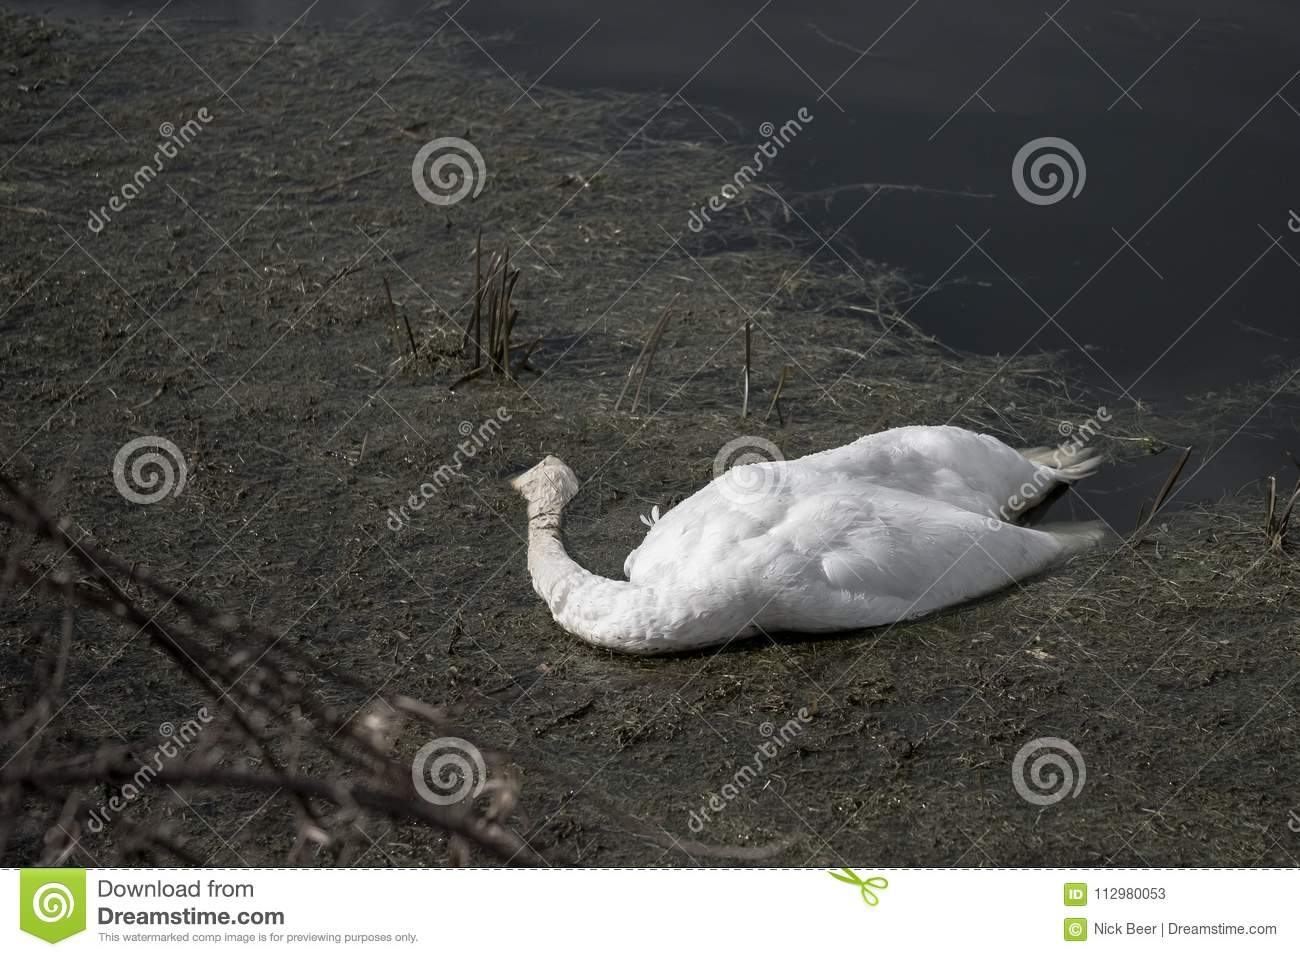 Tragic scene of a dead adult Swan seen floating in a polluted river.